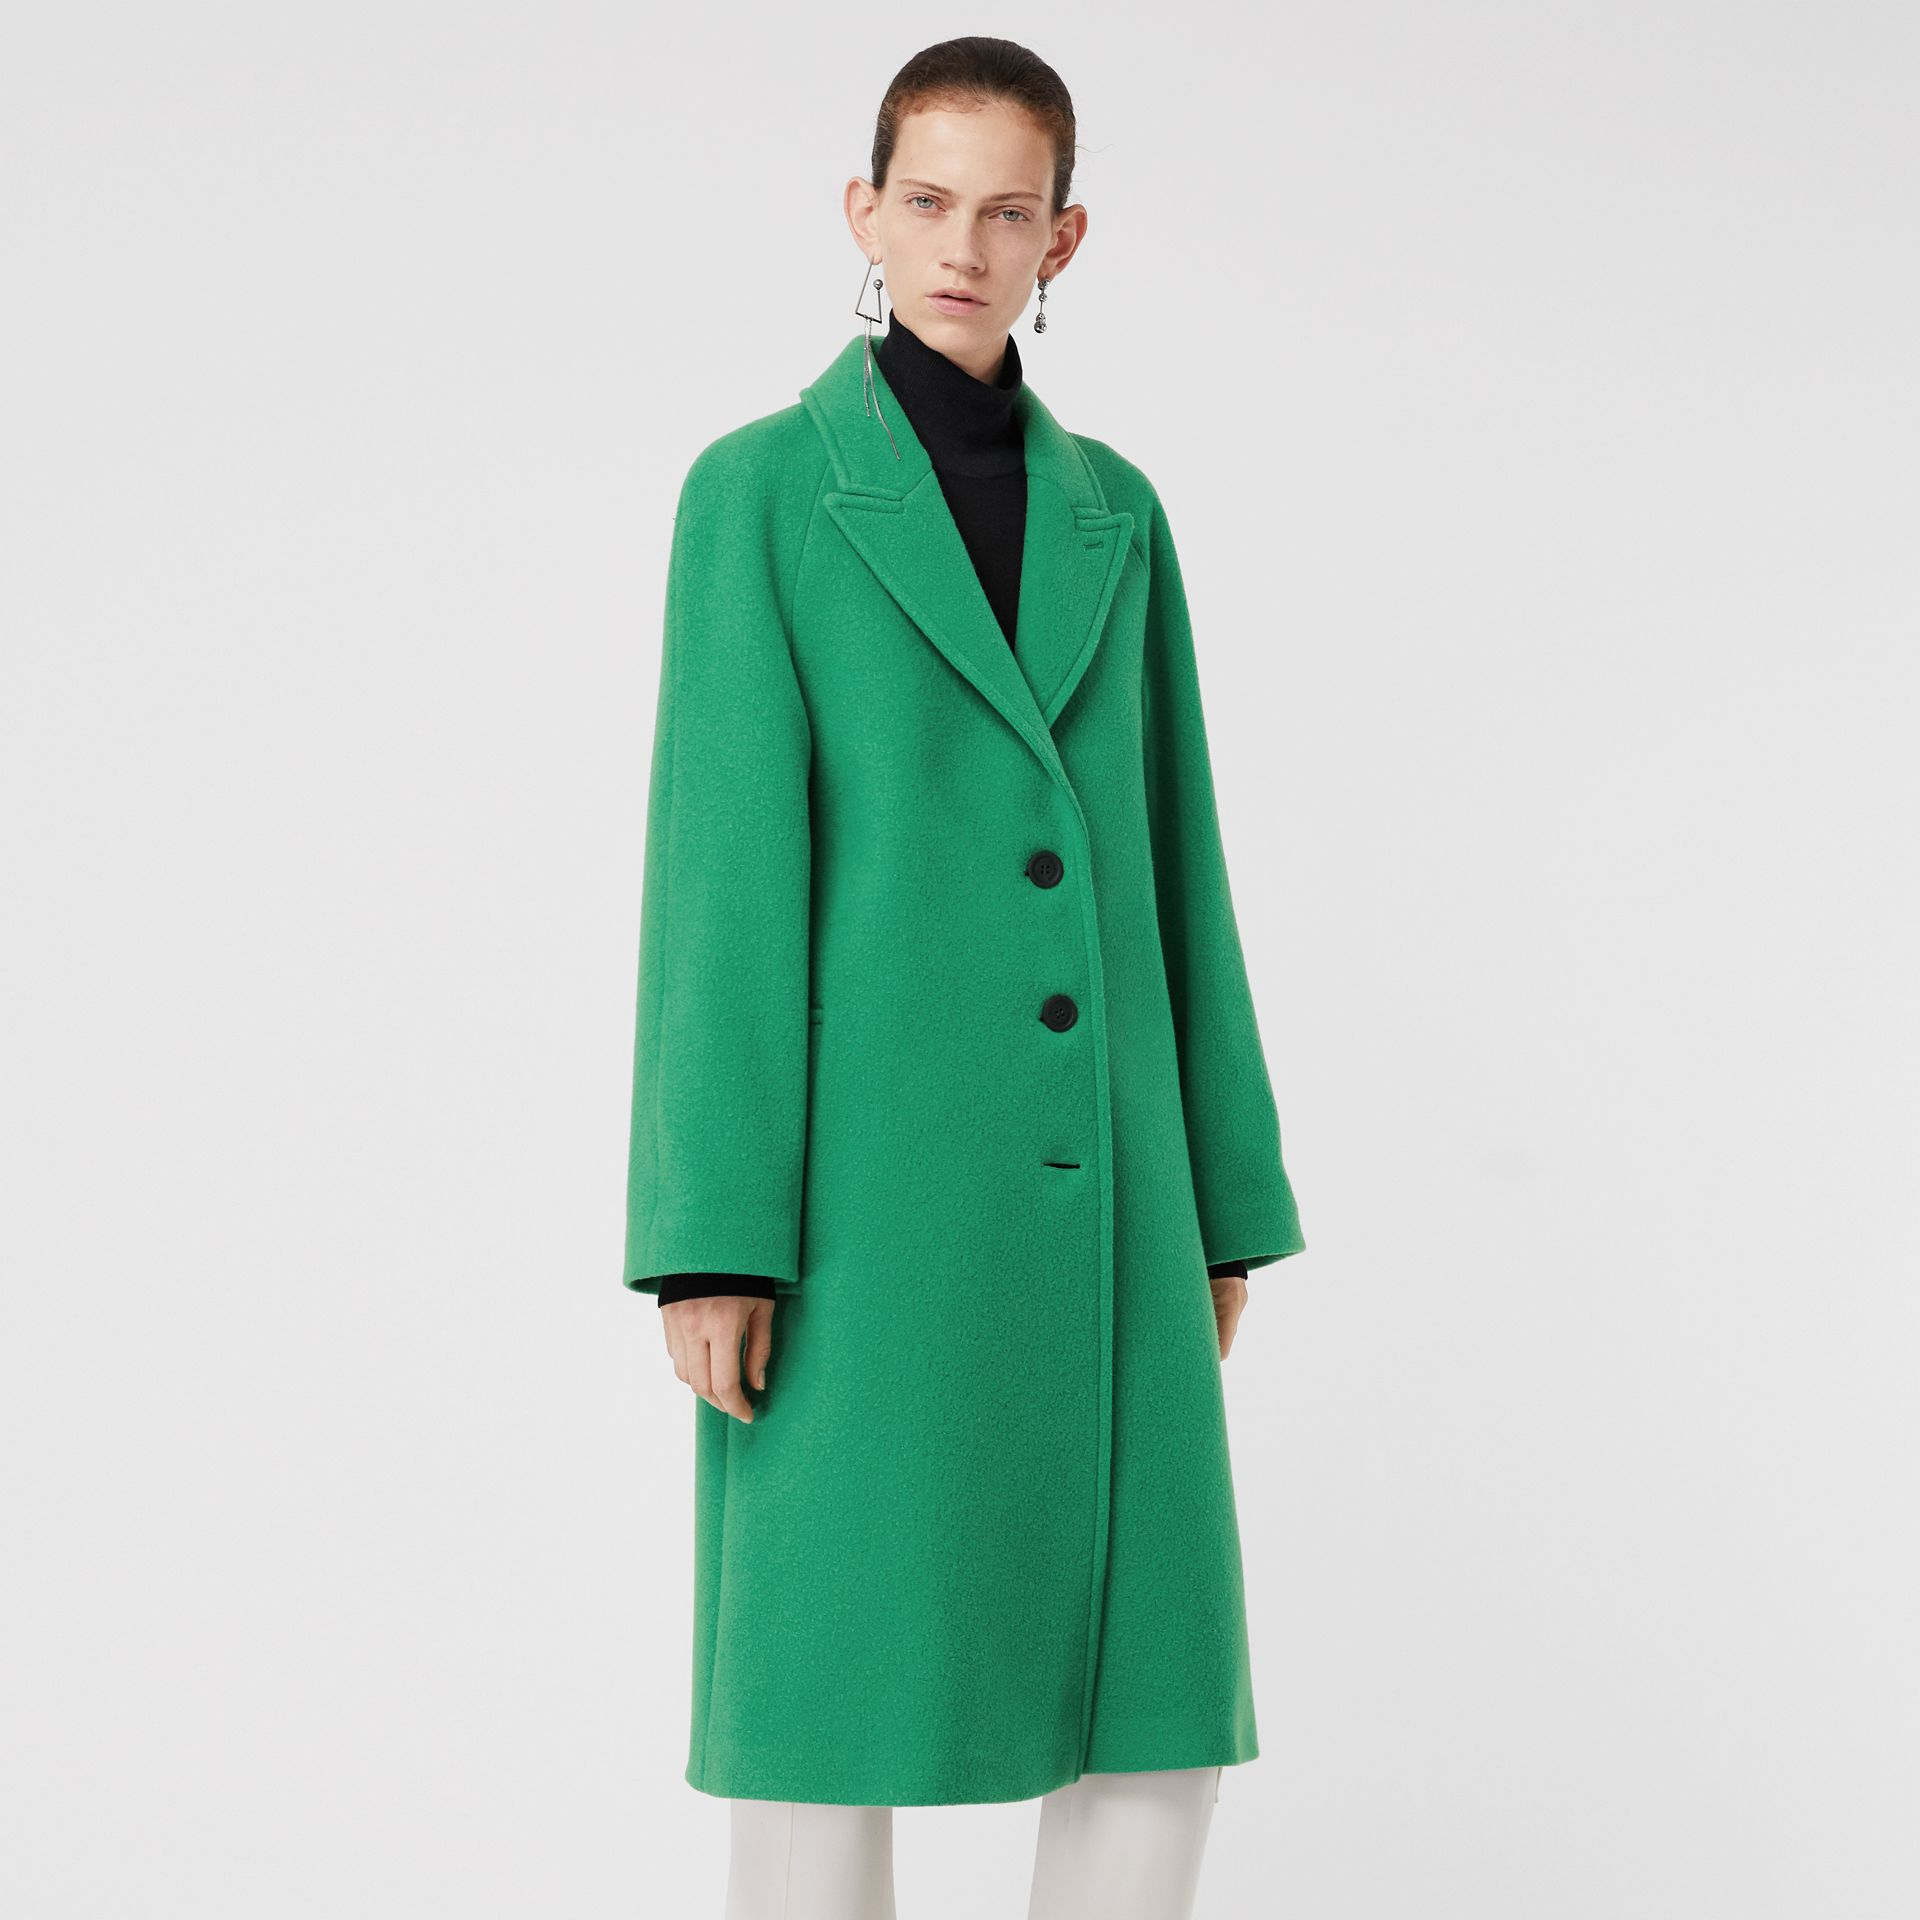 Wool Blend Tailored Coat in Bright Green - Women | Burberry - gallery image 5